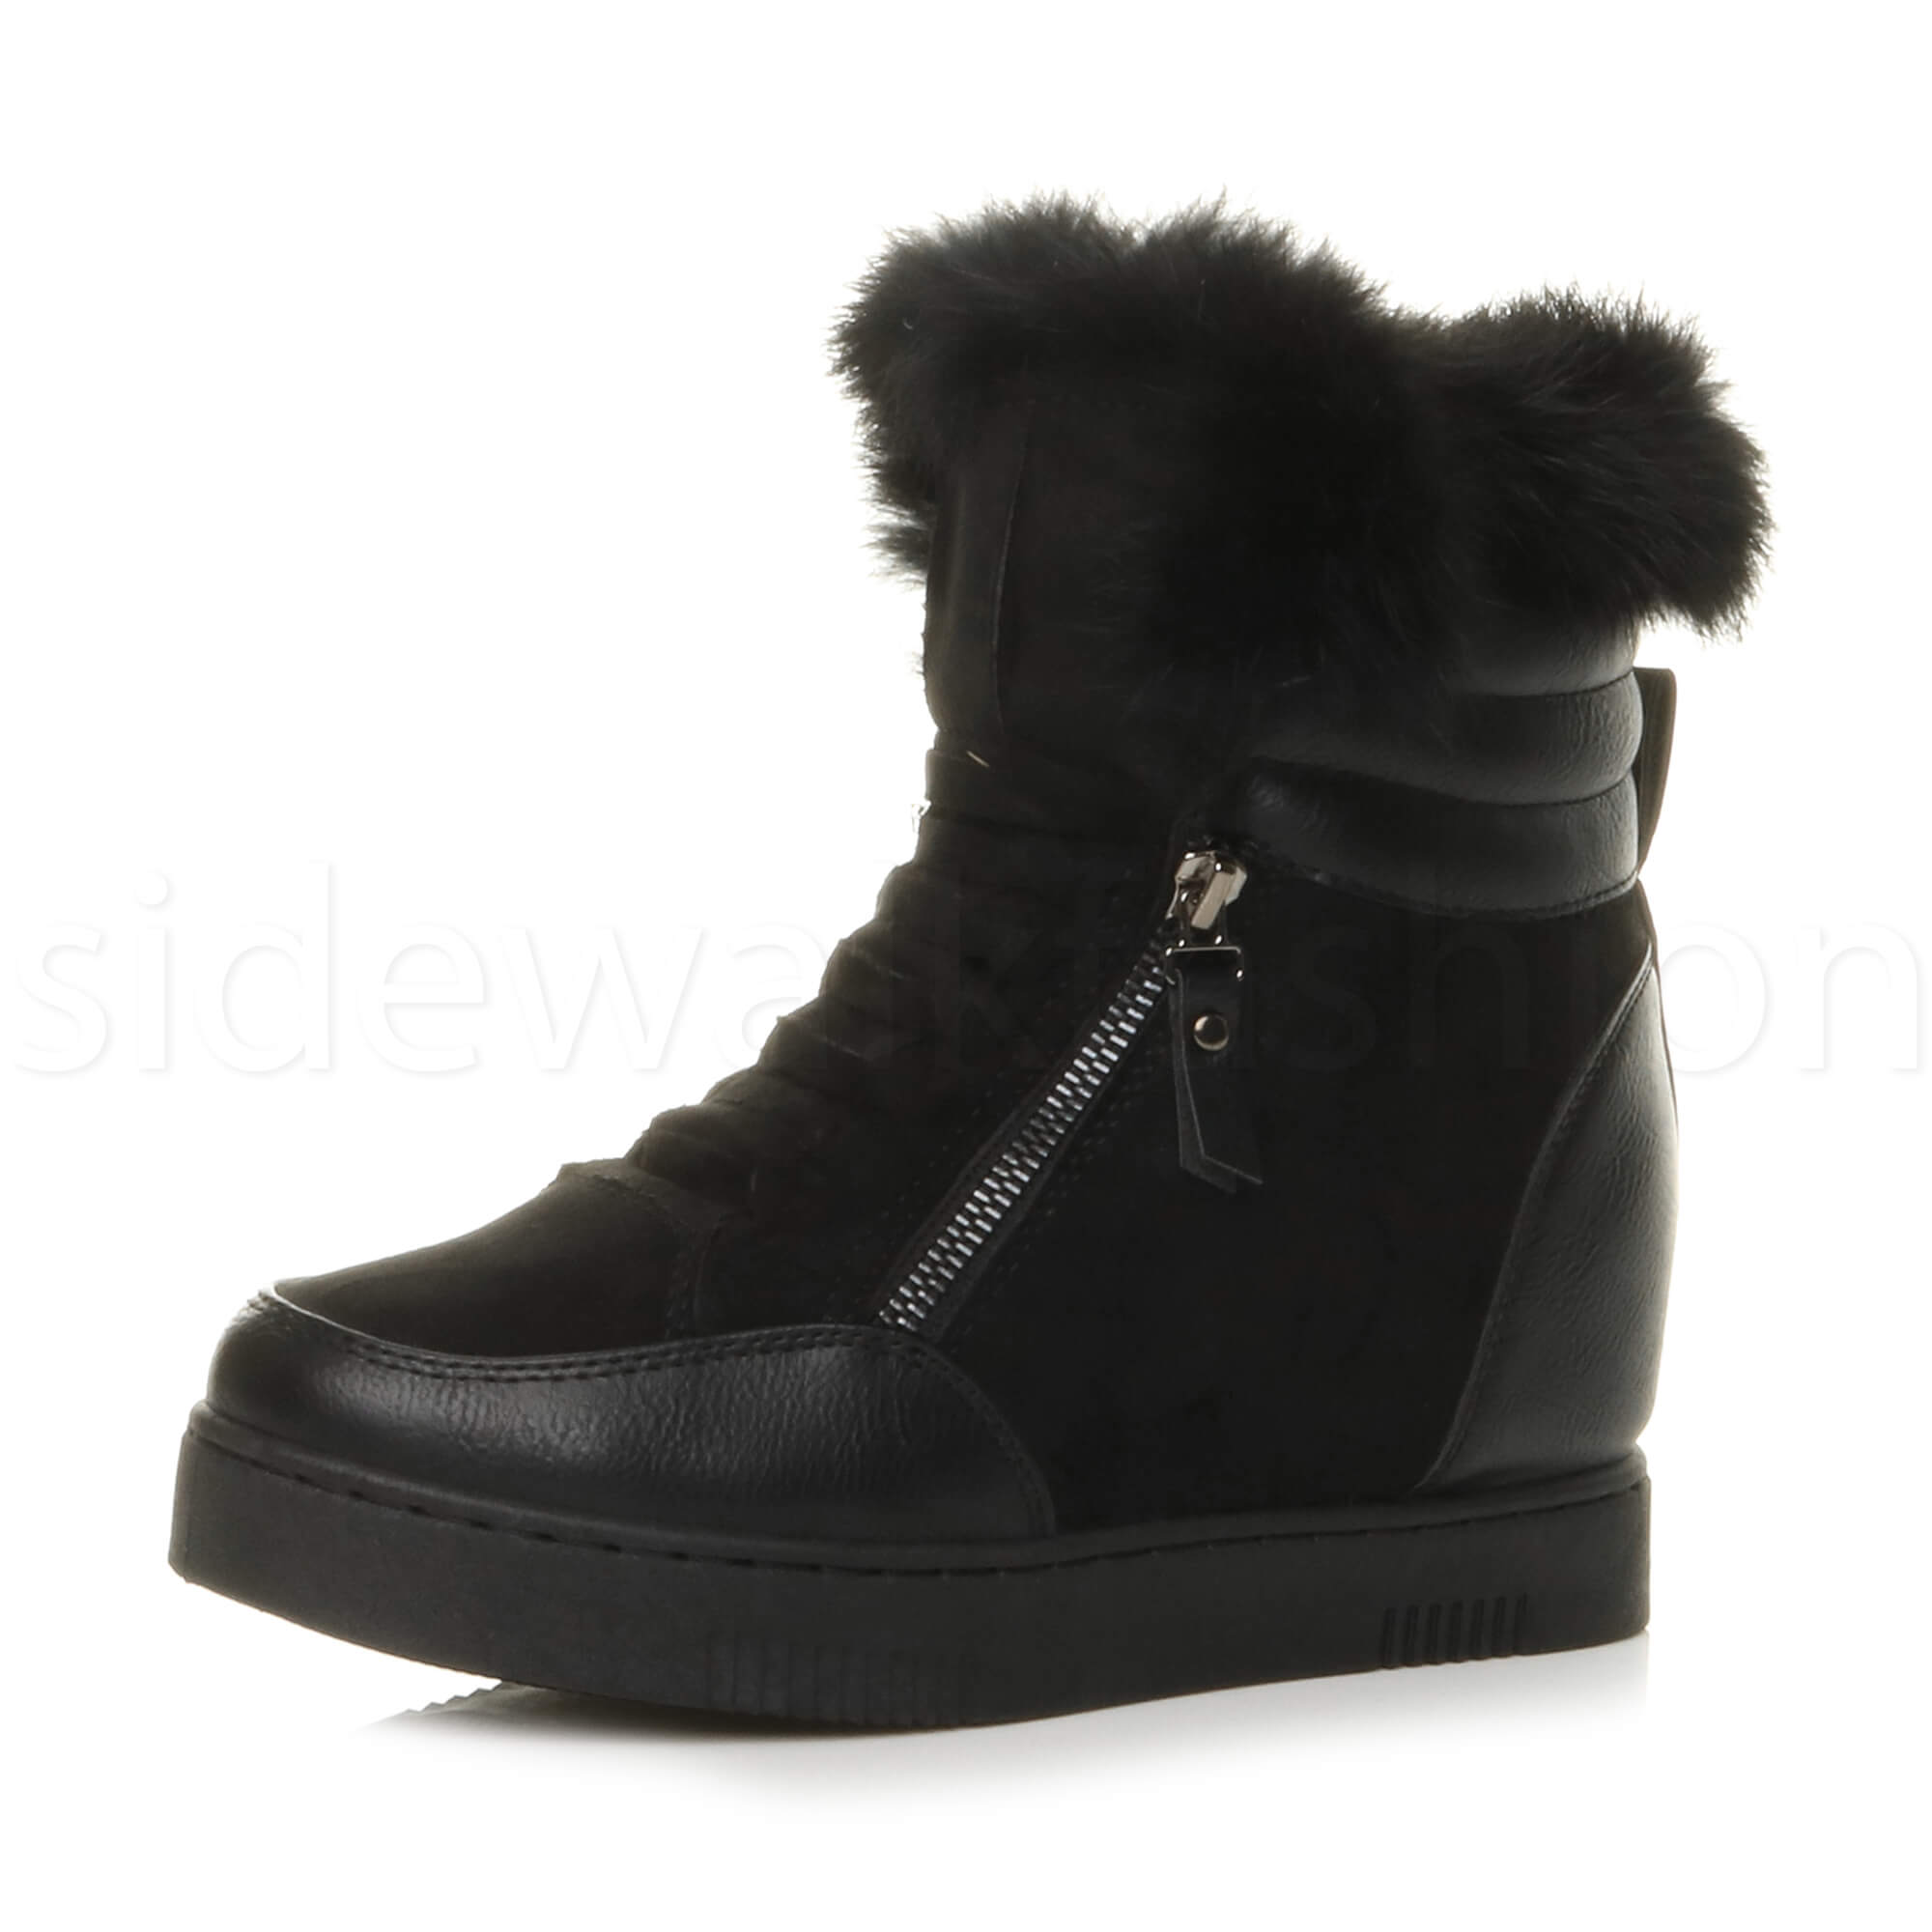 WOMENS LADIES MID WEDGE HEEL ZIP FUR LINED CUFF ANKLE BOOTS TRAINERS SIZE